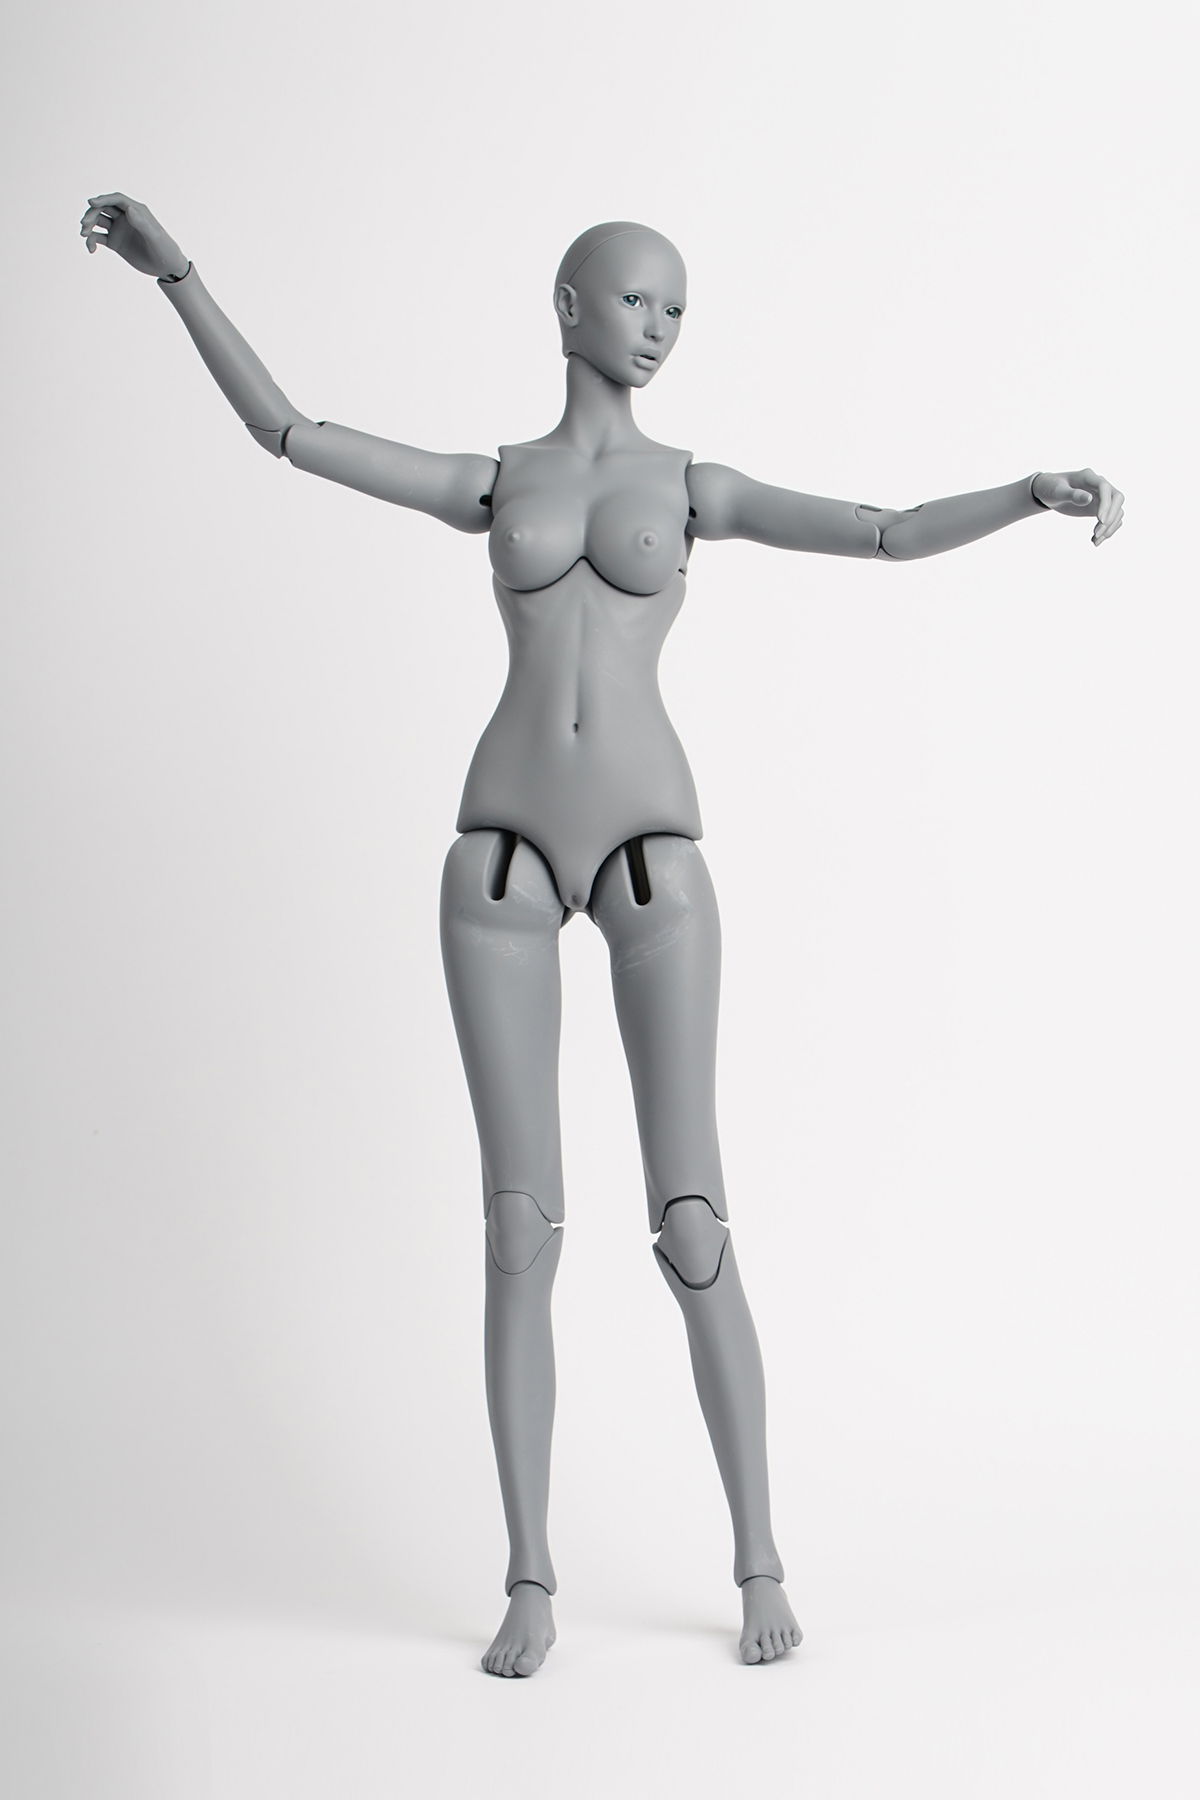 Amanda-Beauty_sculpture_12001800